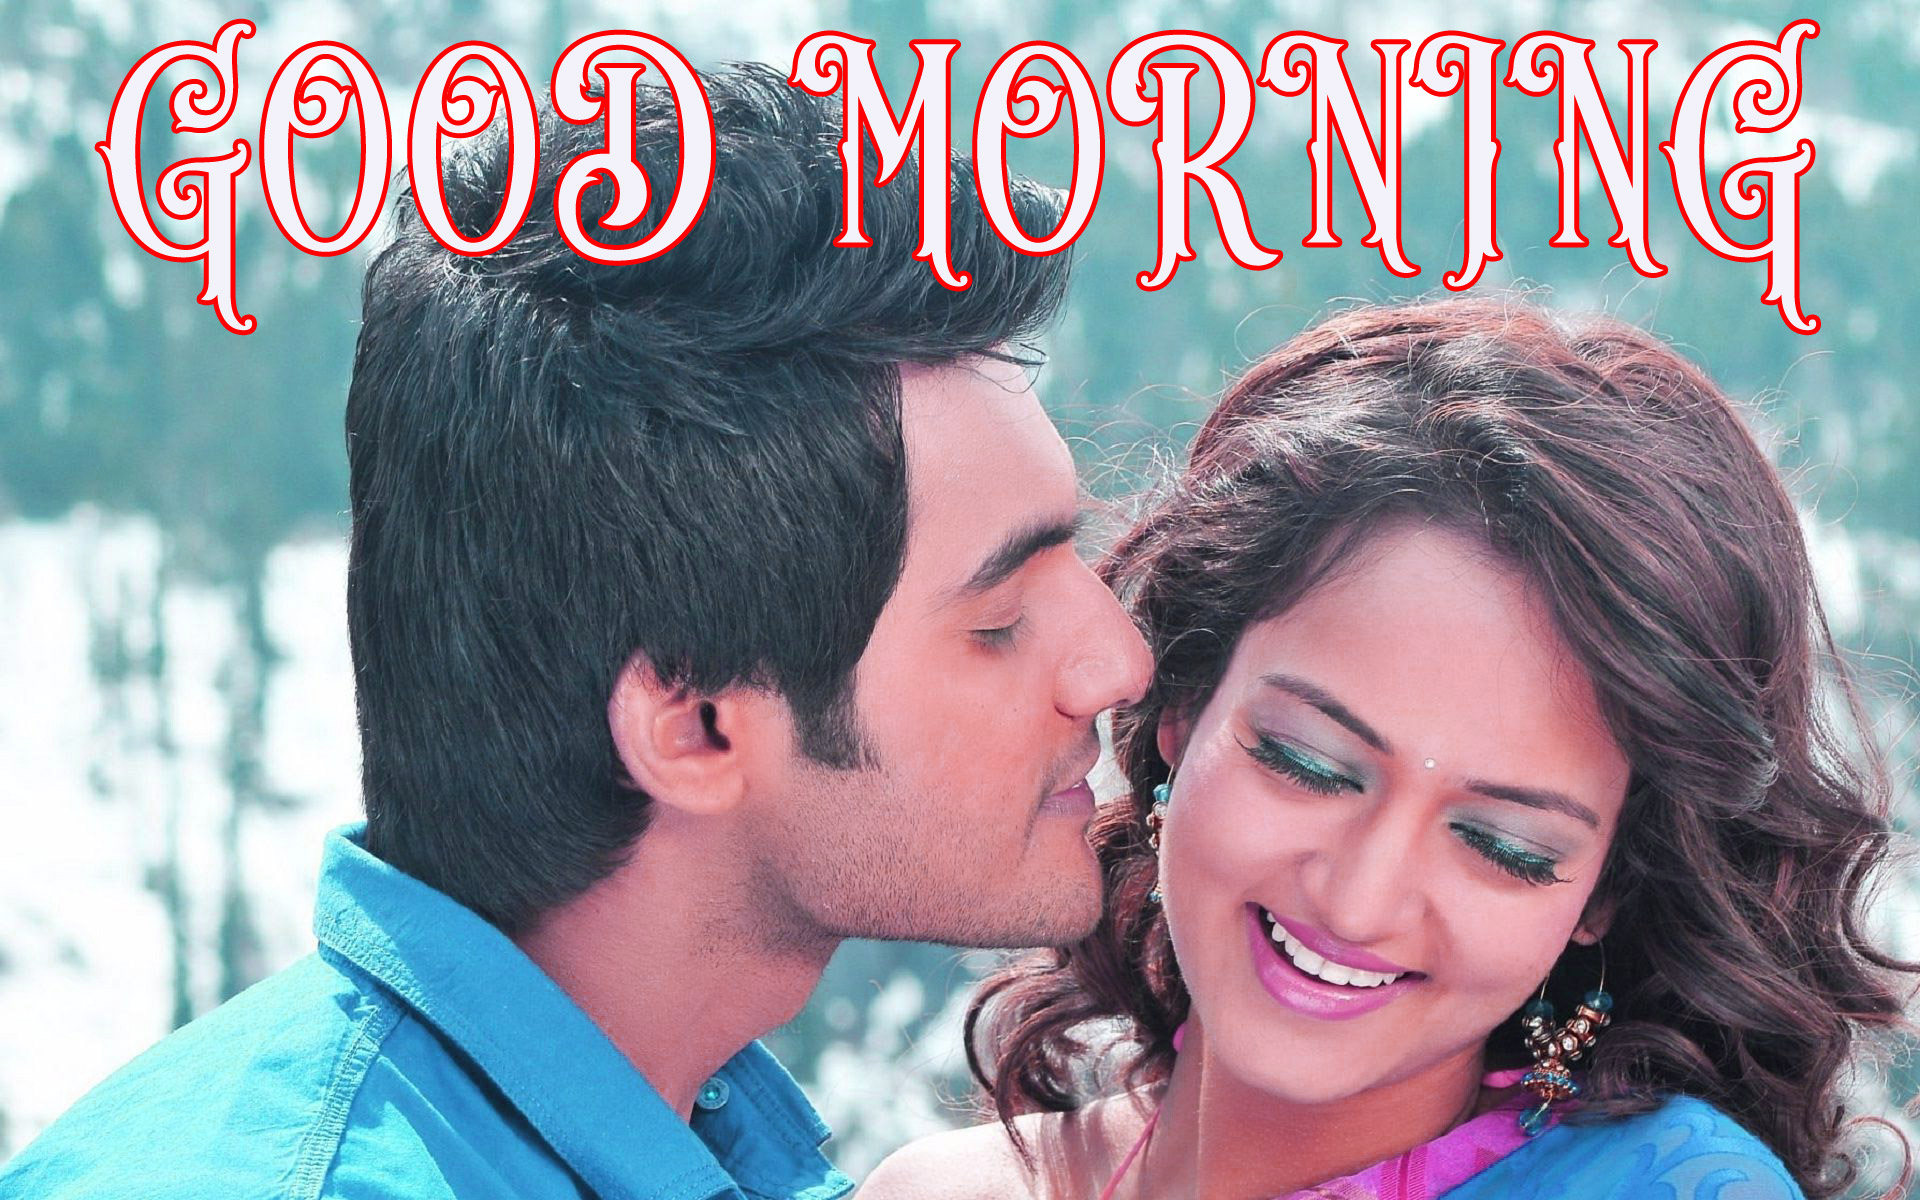 Good Morning Images Wallpaper Pictures For bf & Gf Photo Pictures HD Download